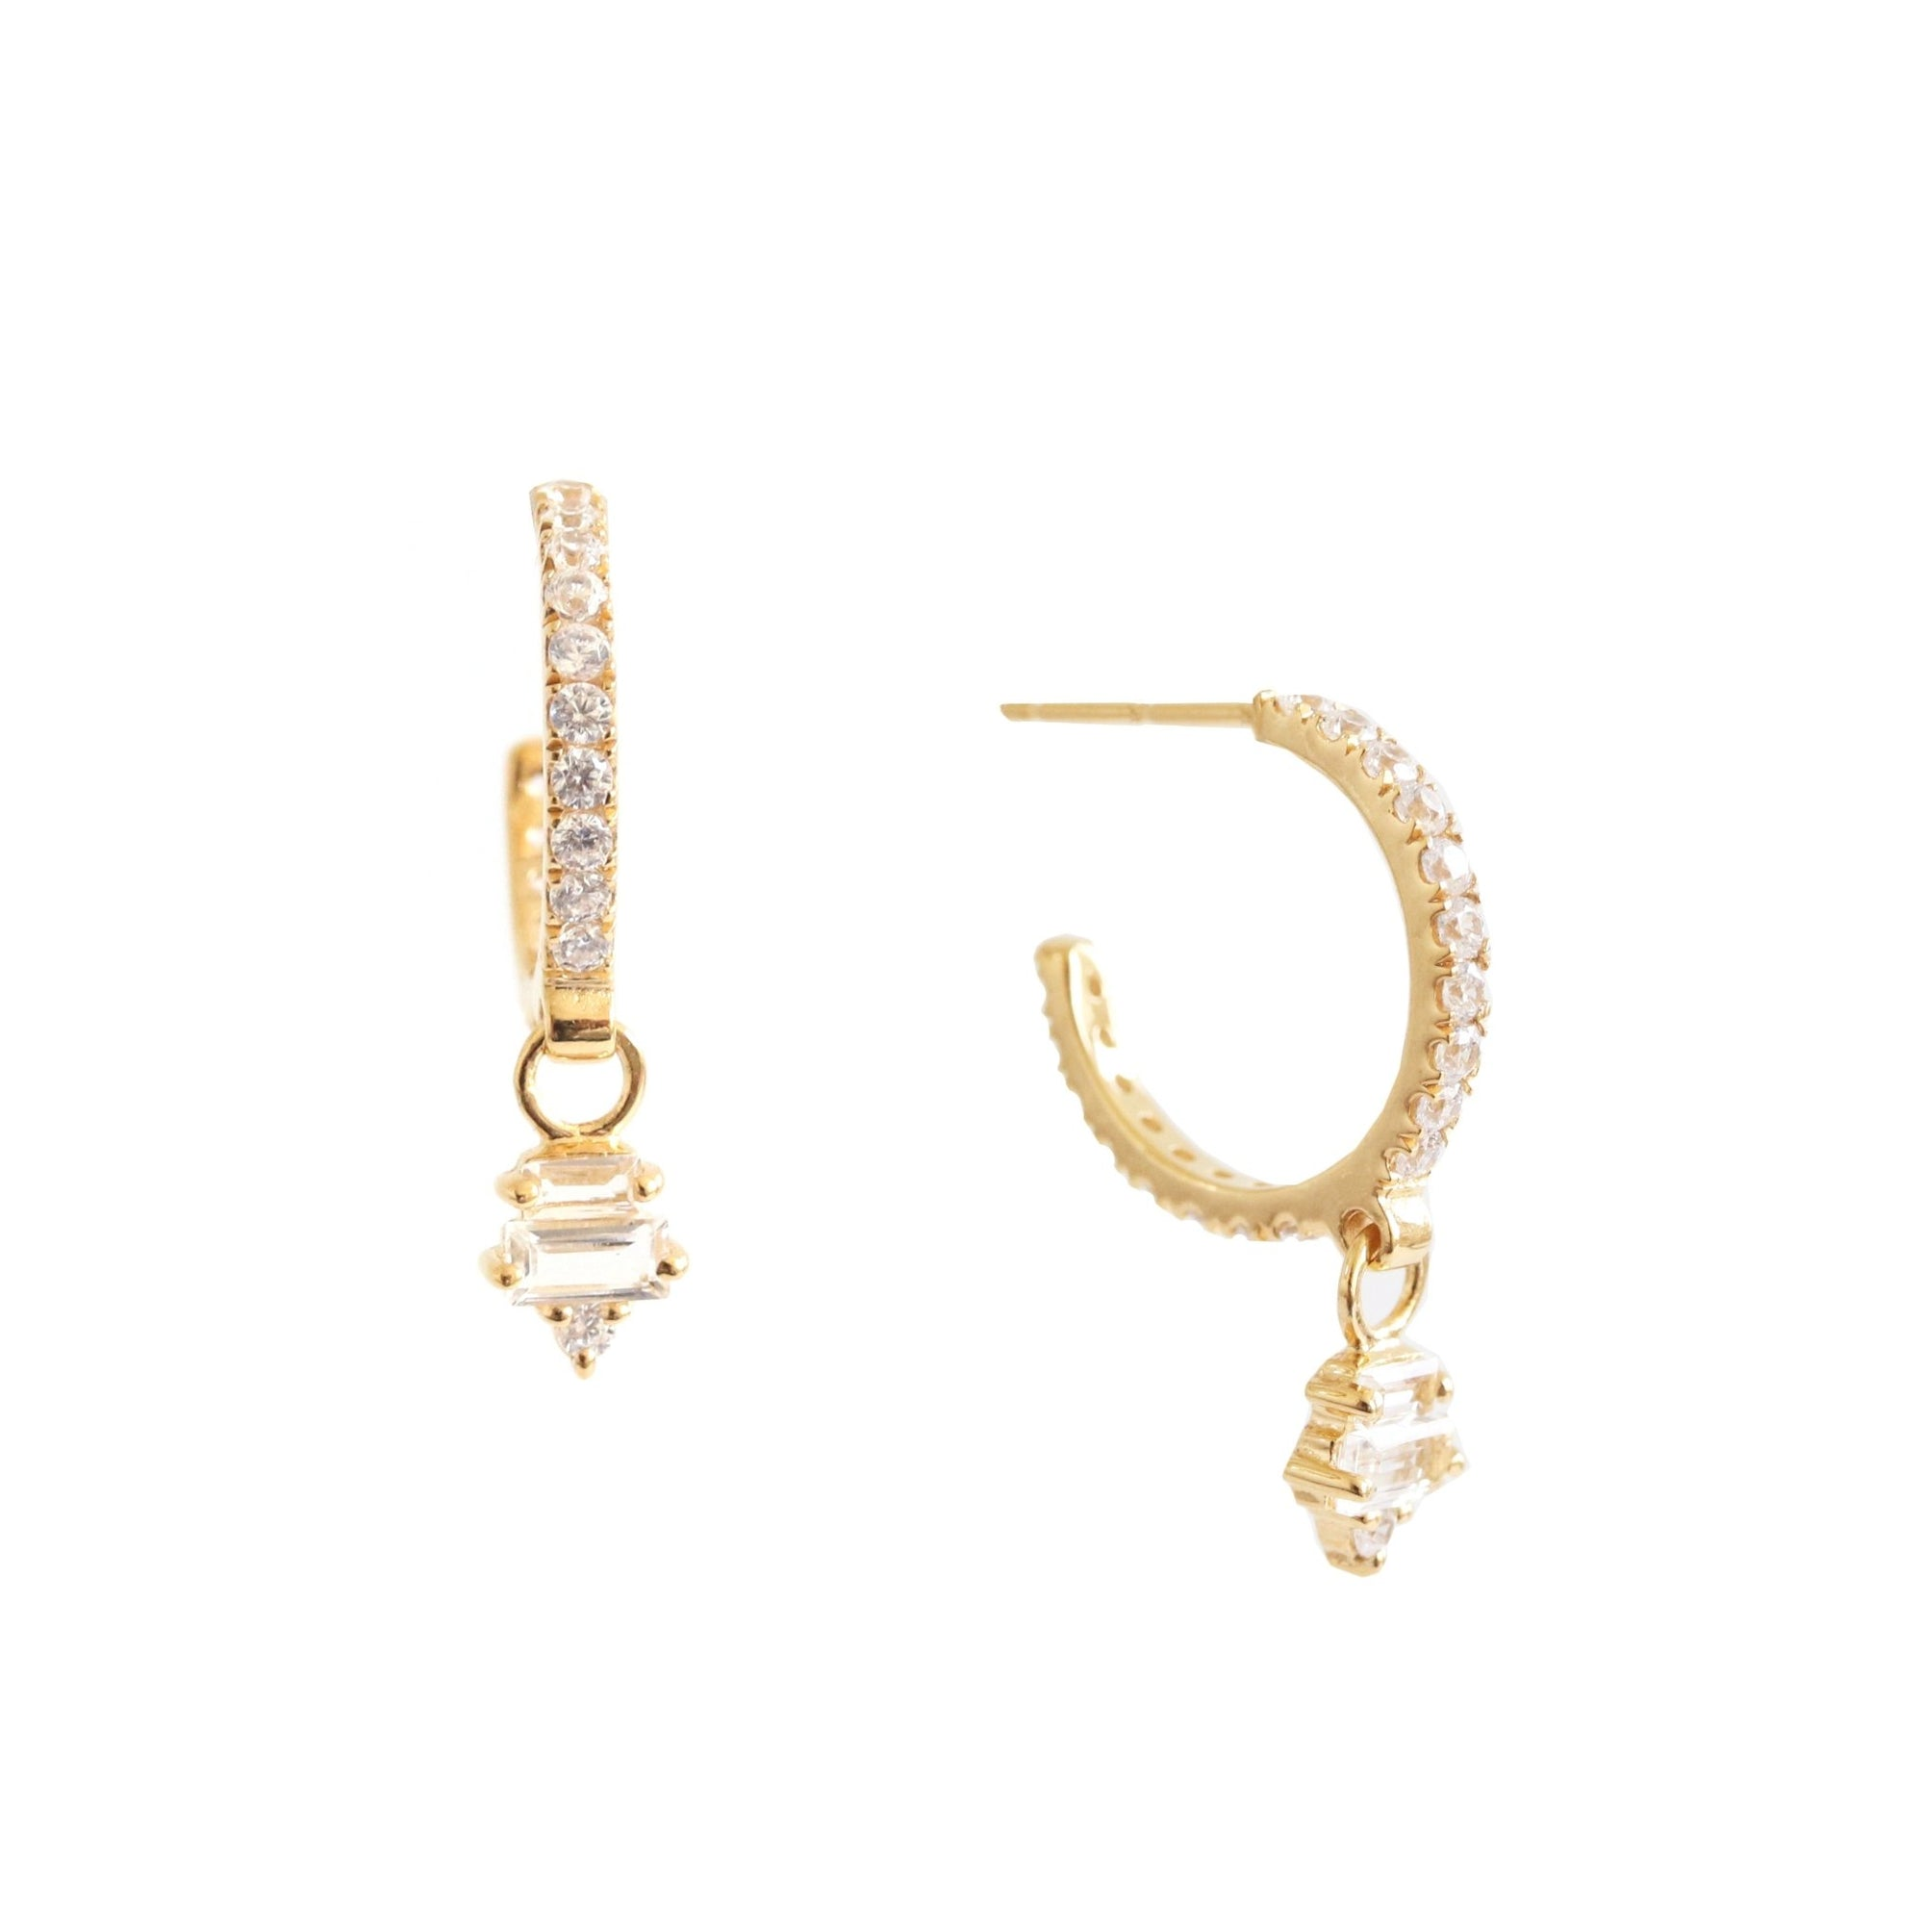 Loyal Huggie Dangle Hoops - White Topaz, Cubic Zirconia & Gold - SO PRETTY CARA COTTER